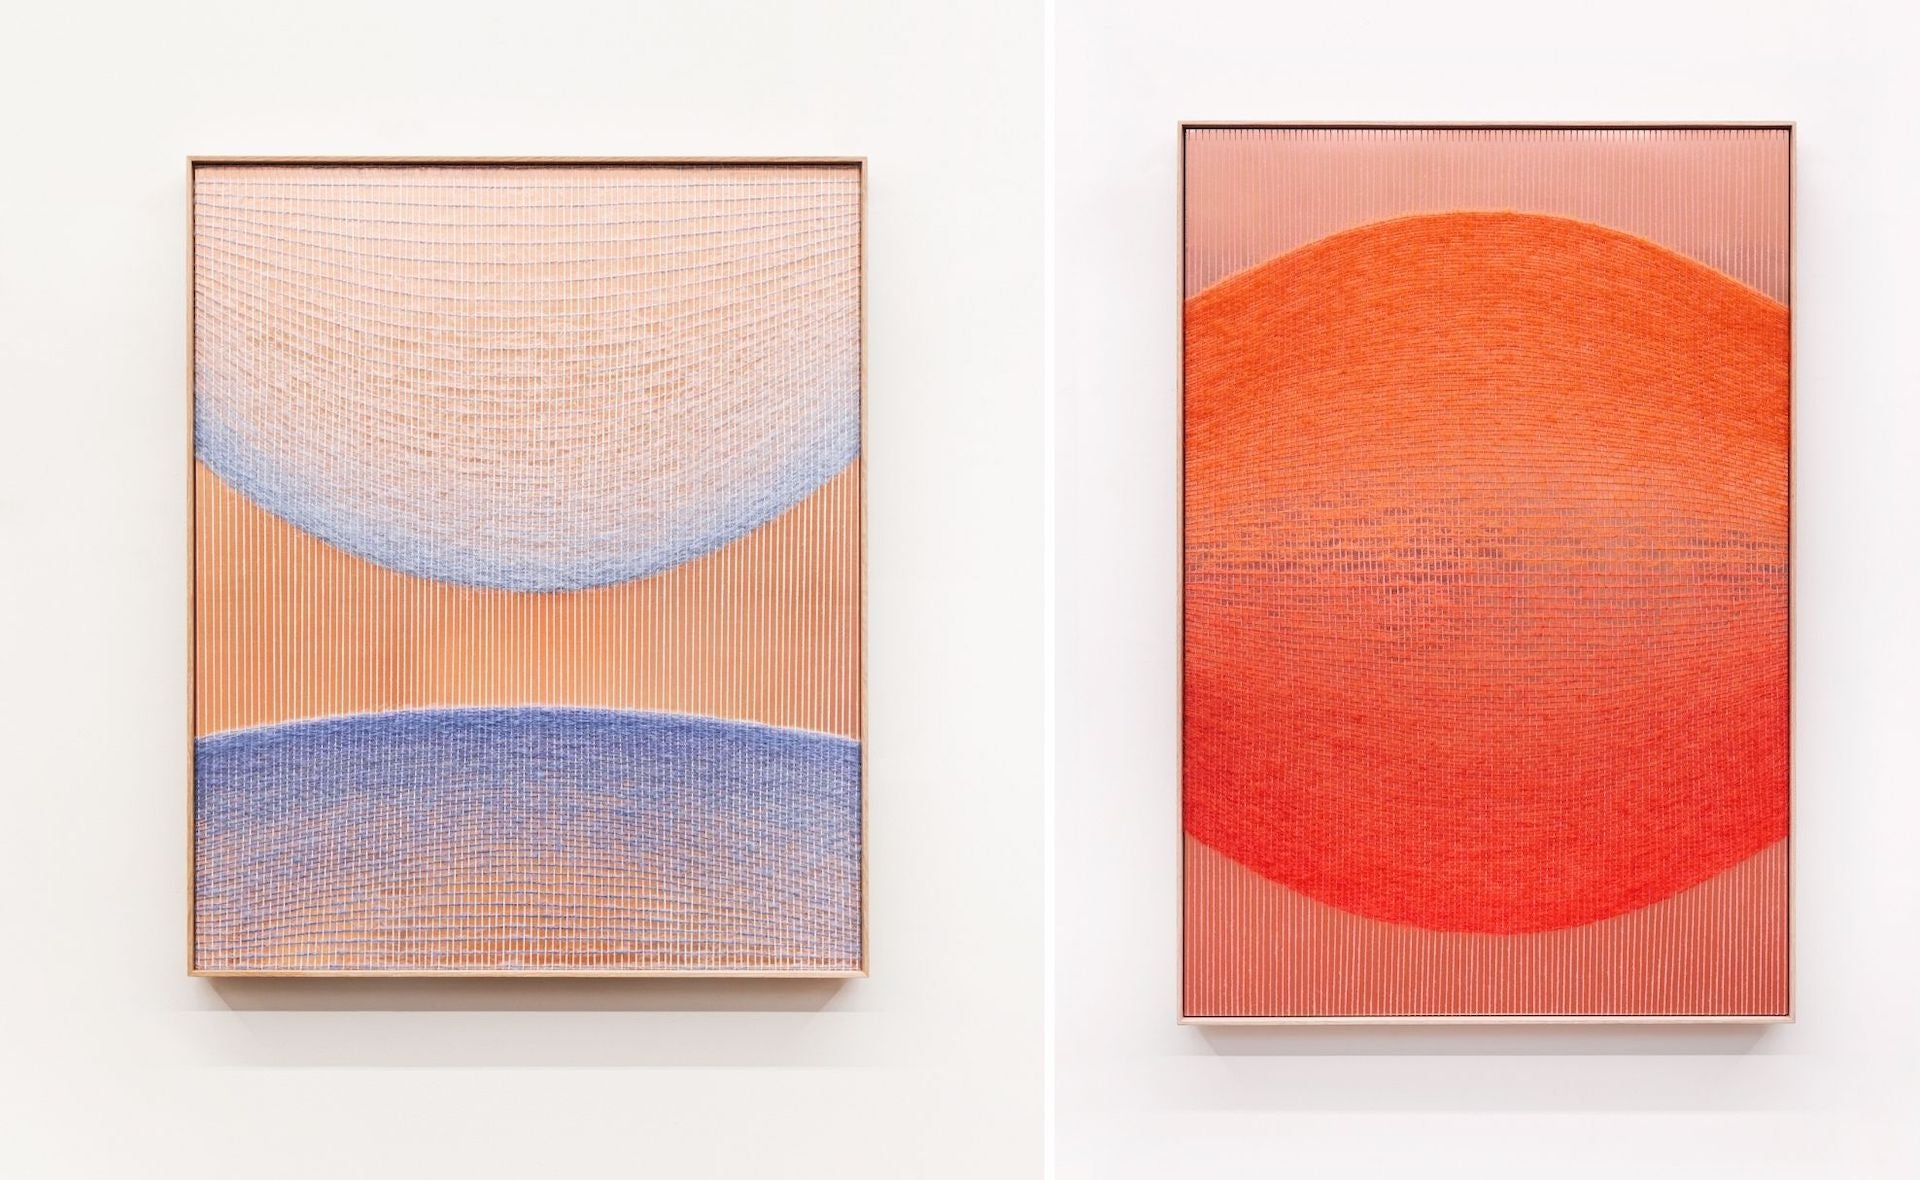 Left to right: Pale Blue Ellipses and Copper and Orange-Red to Red-Ellipse by Mimi Jung (2020); Natural fibers, copper sheet and wood frame. Photos © Mimi Jung